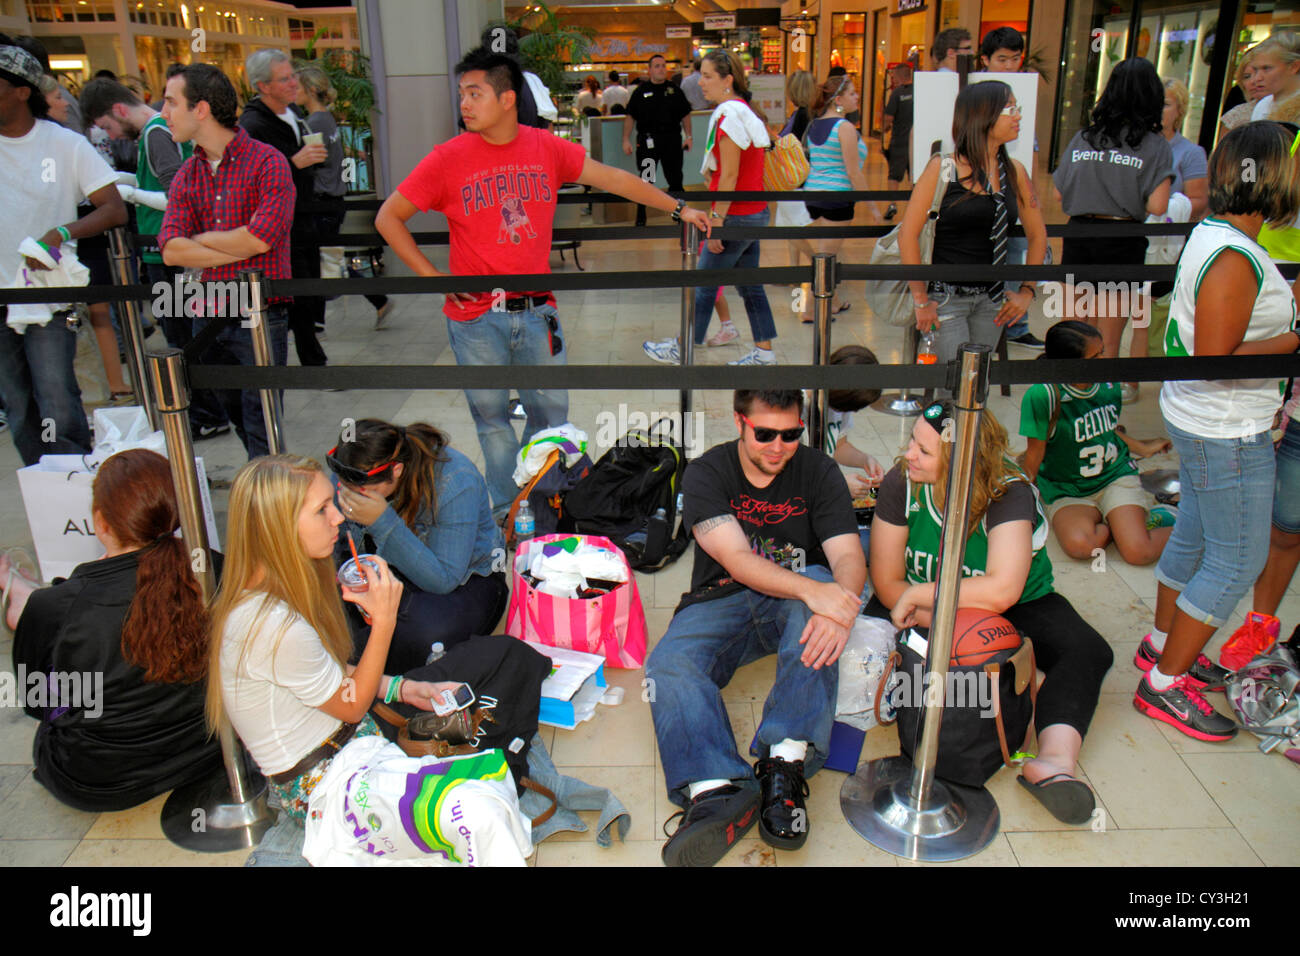 Boston Massachusetts Boylston Street Shops at Prudential Center shopping line queue teen man woman sports celebrity - Stock Image